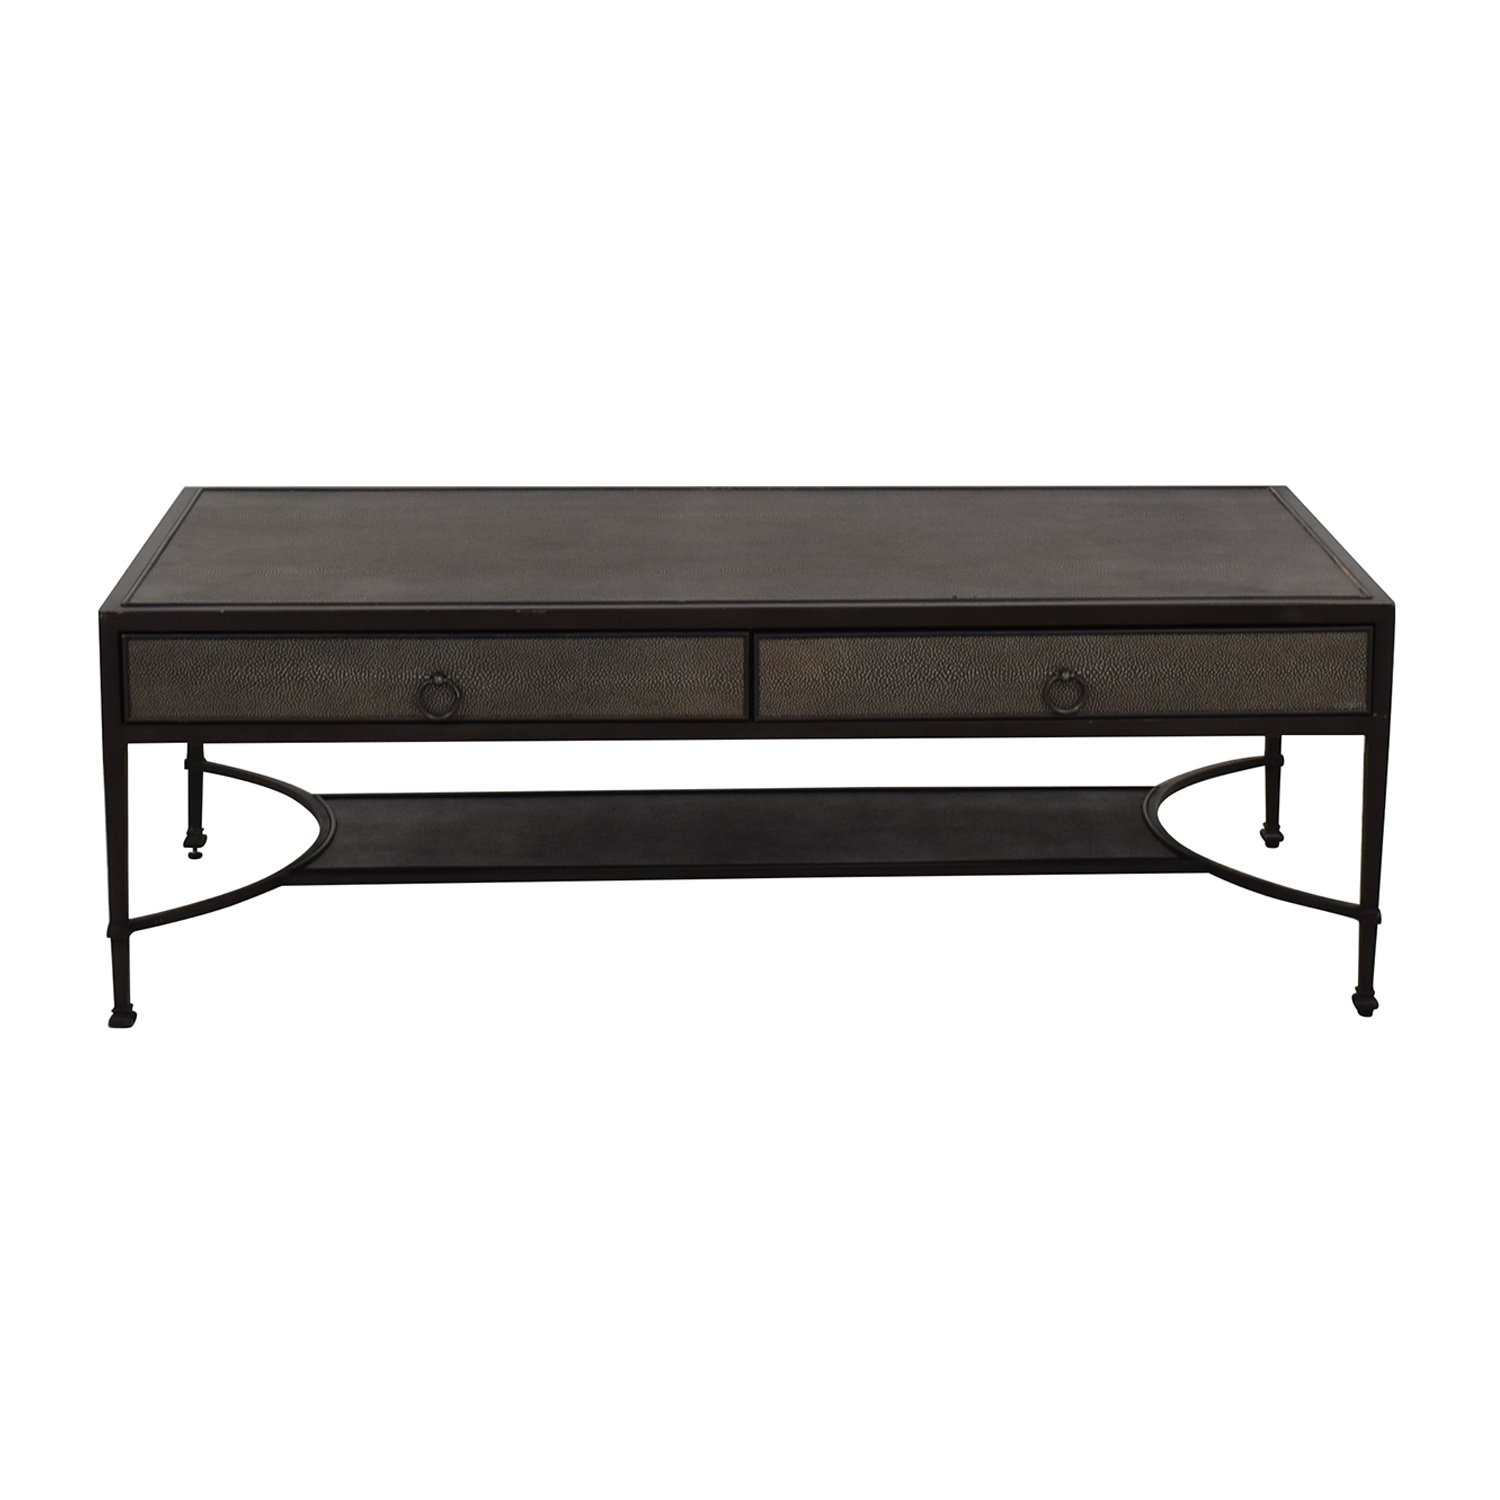 Restoration Hardware Restoration Hardware Coffee Table nj